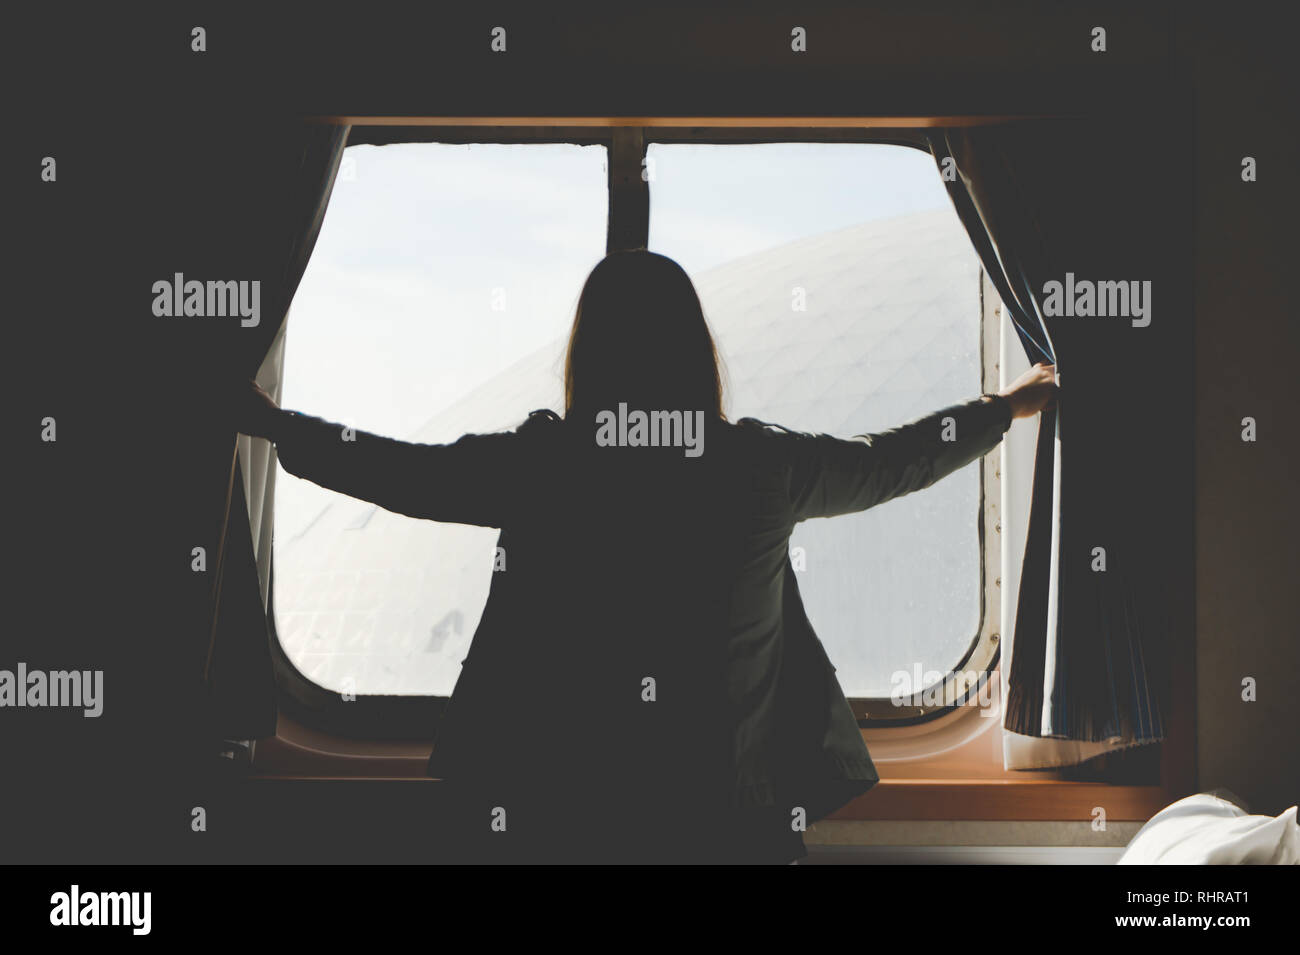 Pretty woman viewed from the back excitedly opening curtains of her cabin on a cruise ship (This is the Carnival Inspiration - California) - Stock Image